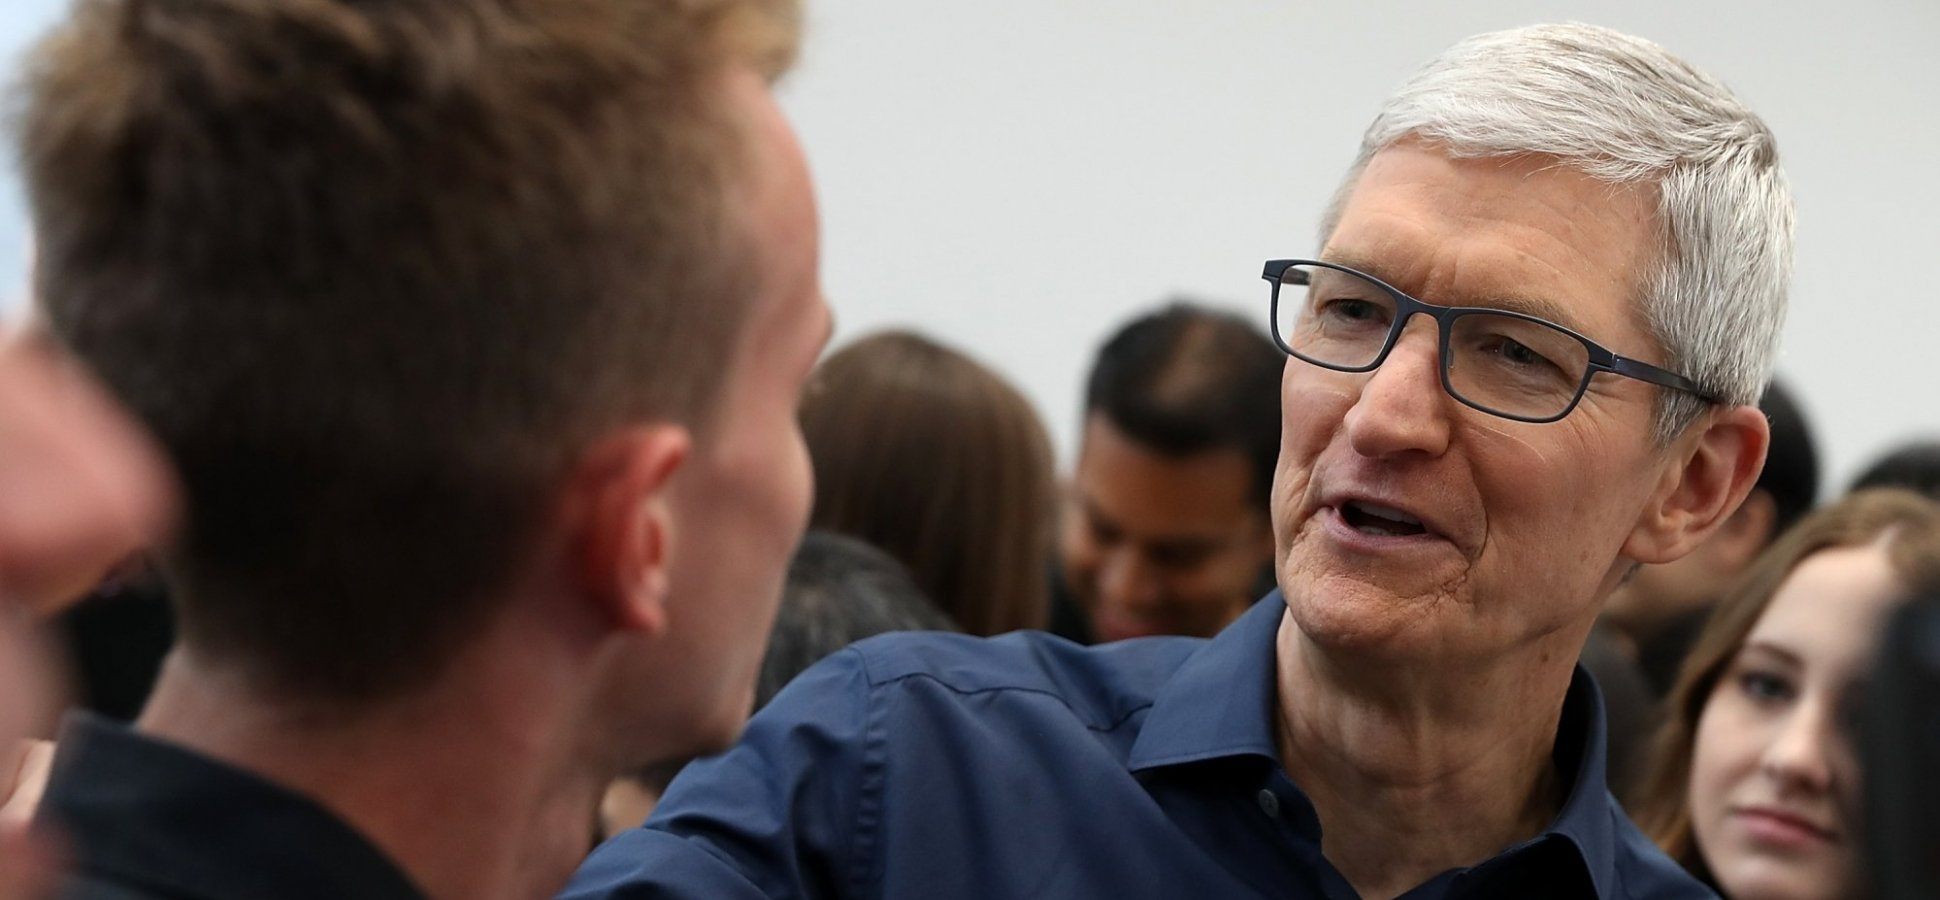 Apple Just Announced It's Responsible for 2.4 Million US Jobs. That's Not Even the Most Important Part